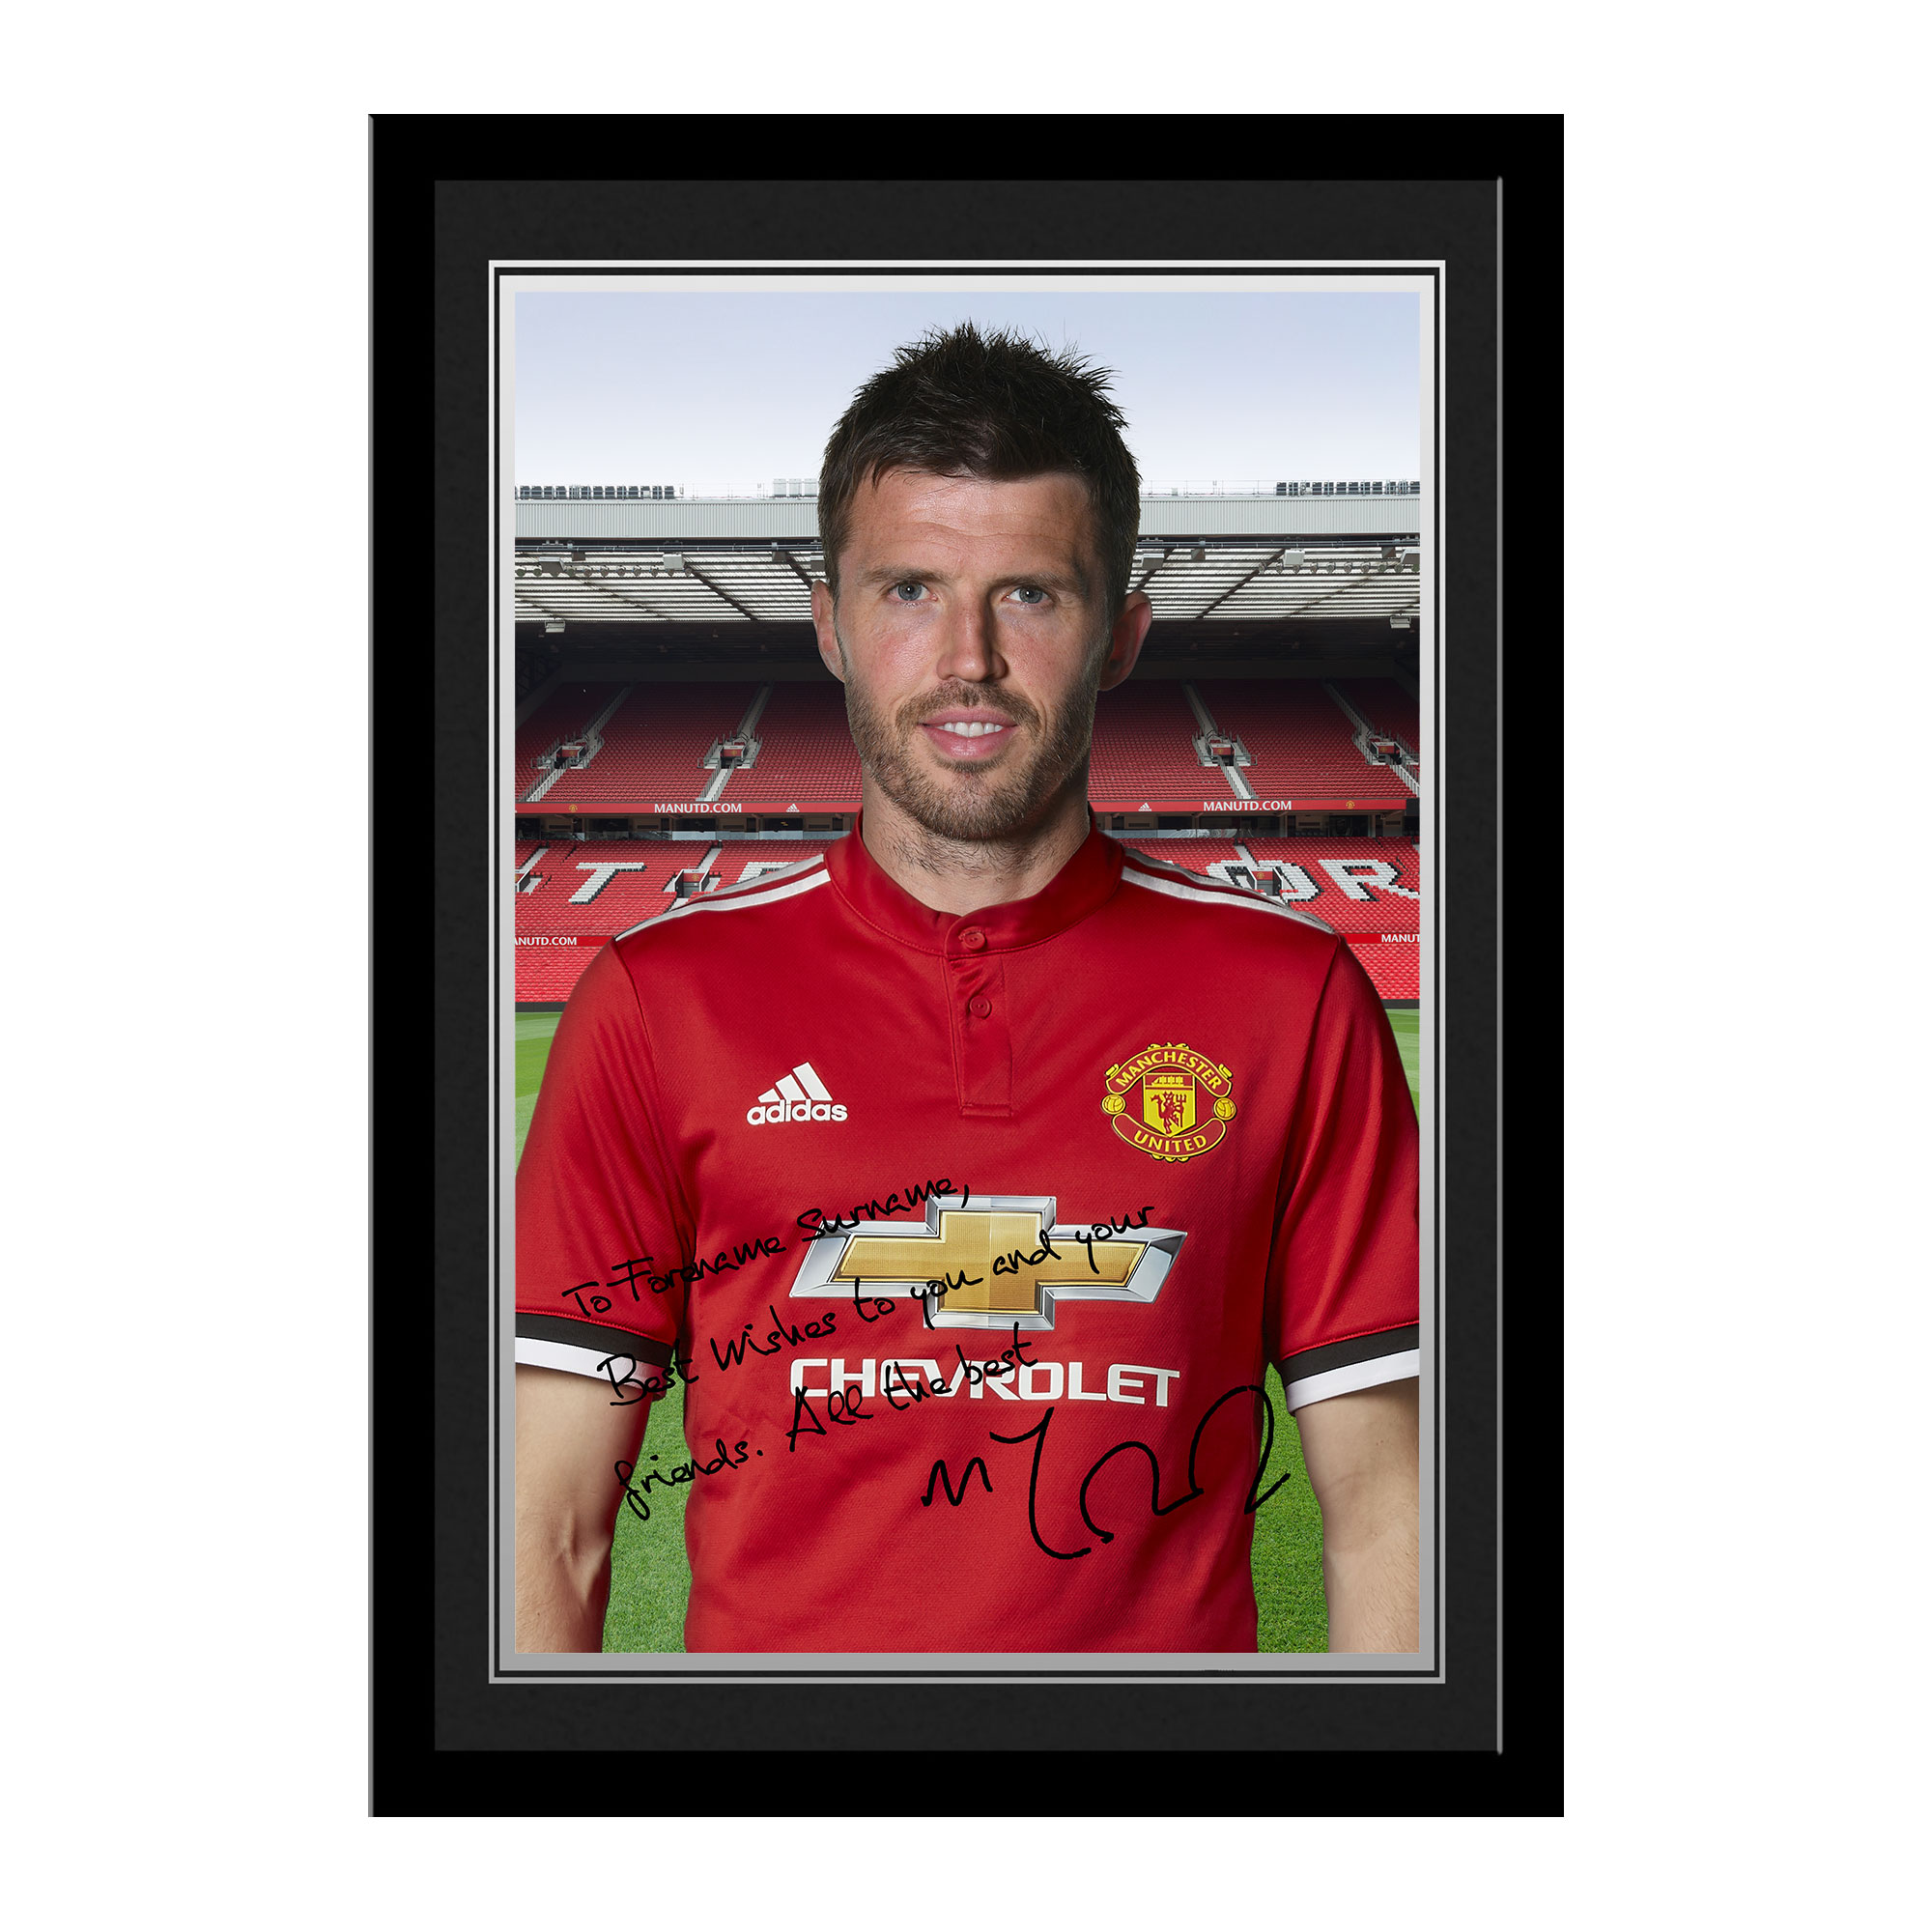 Manchester United FC Carrick Autograph Photo Framed